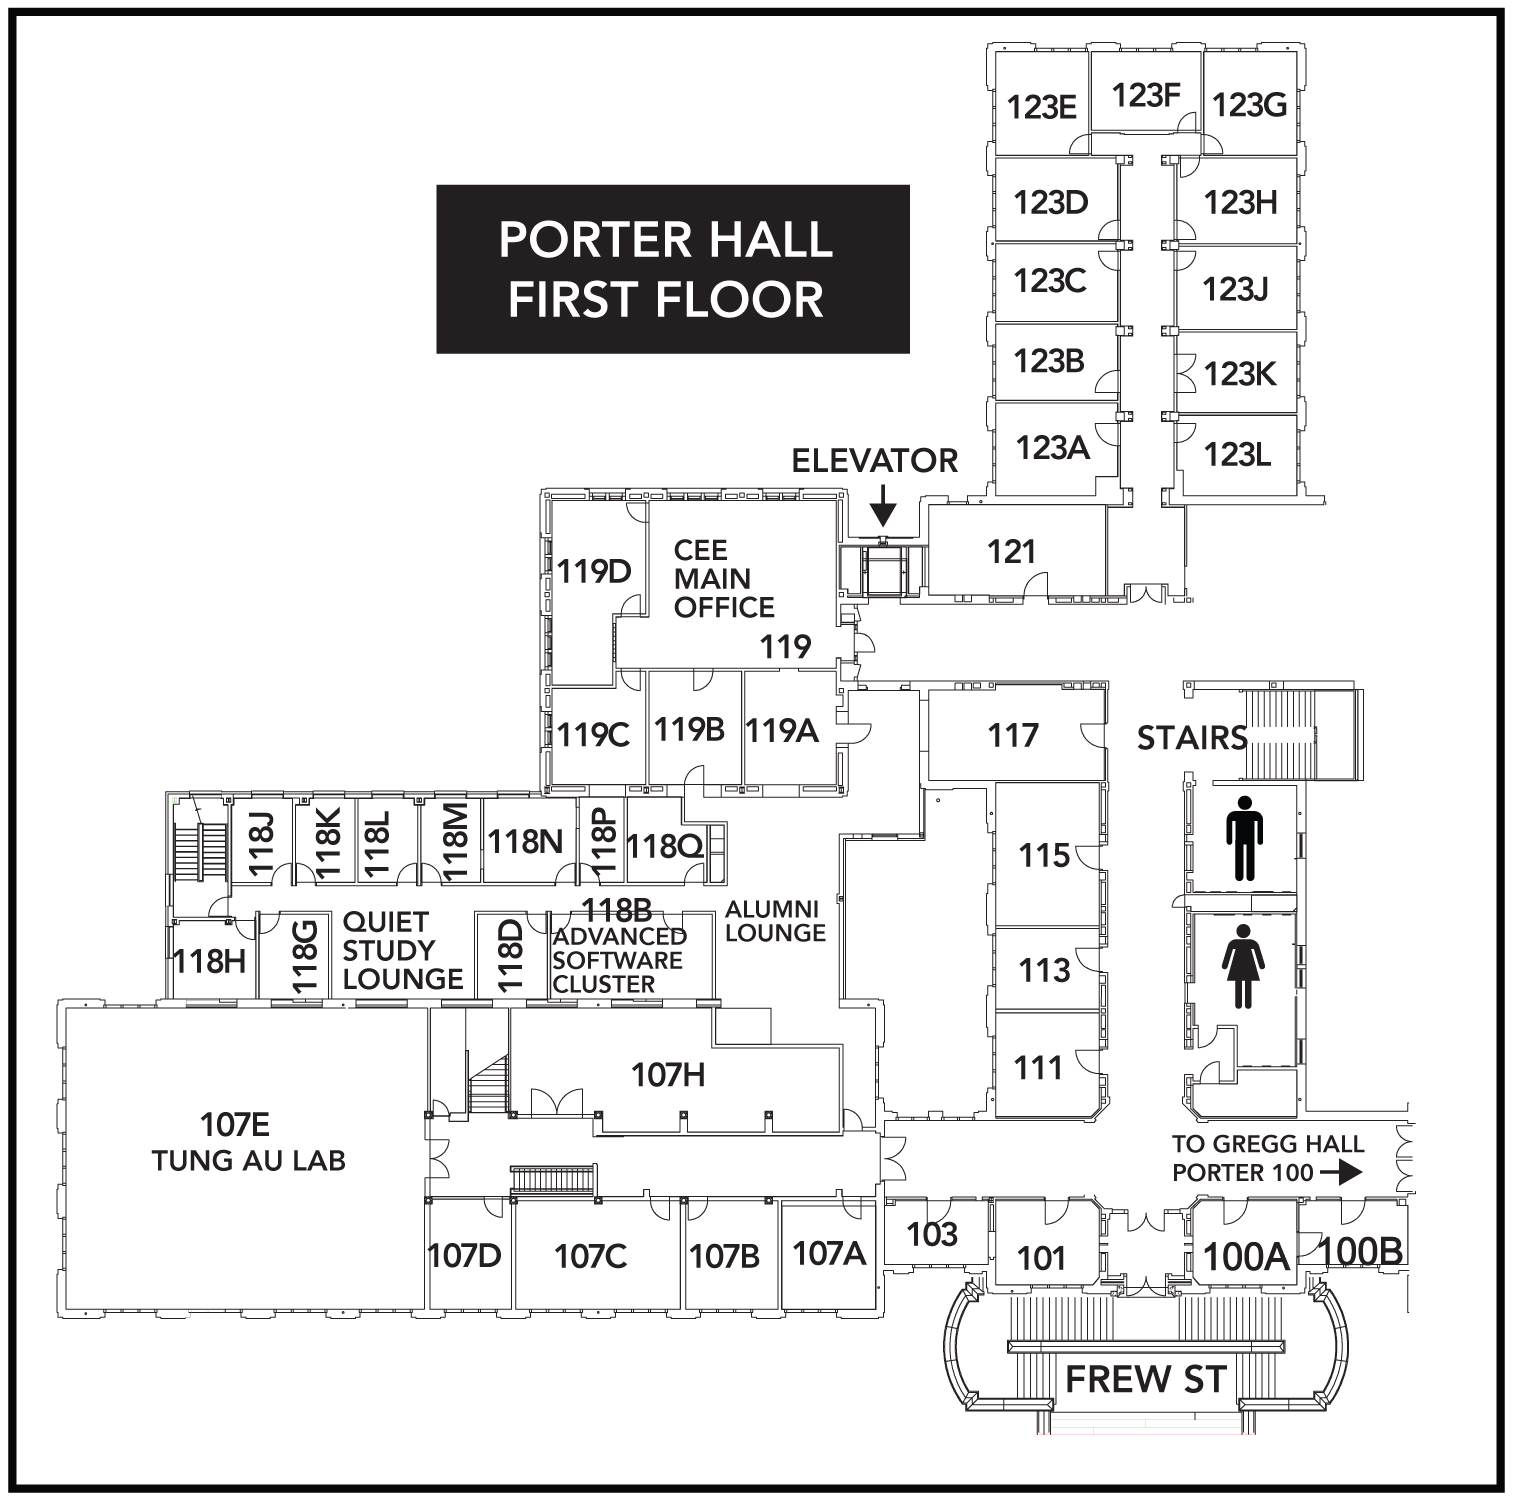 Cee Building Maps Civil And Environmental Engineering